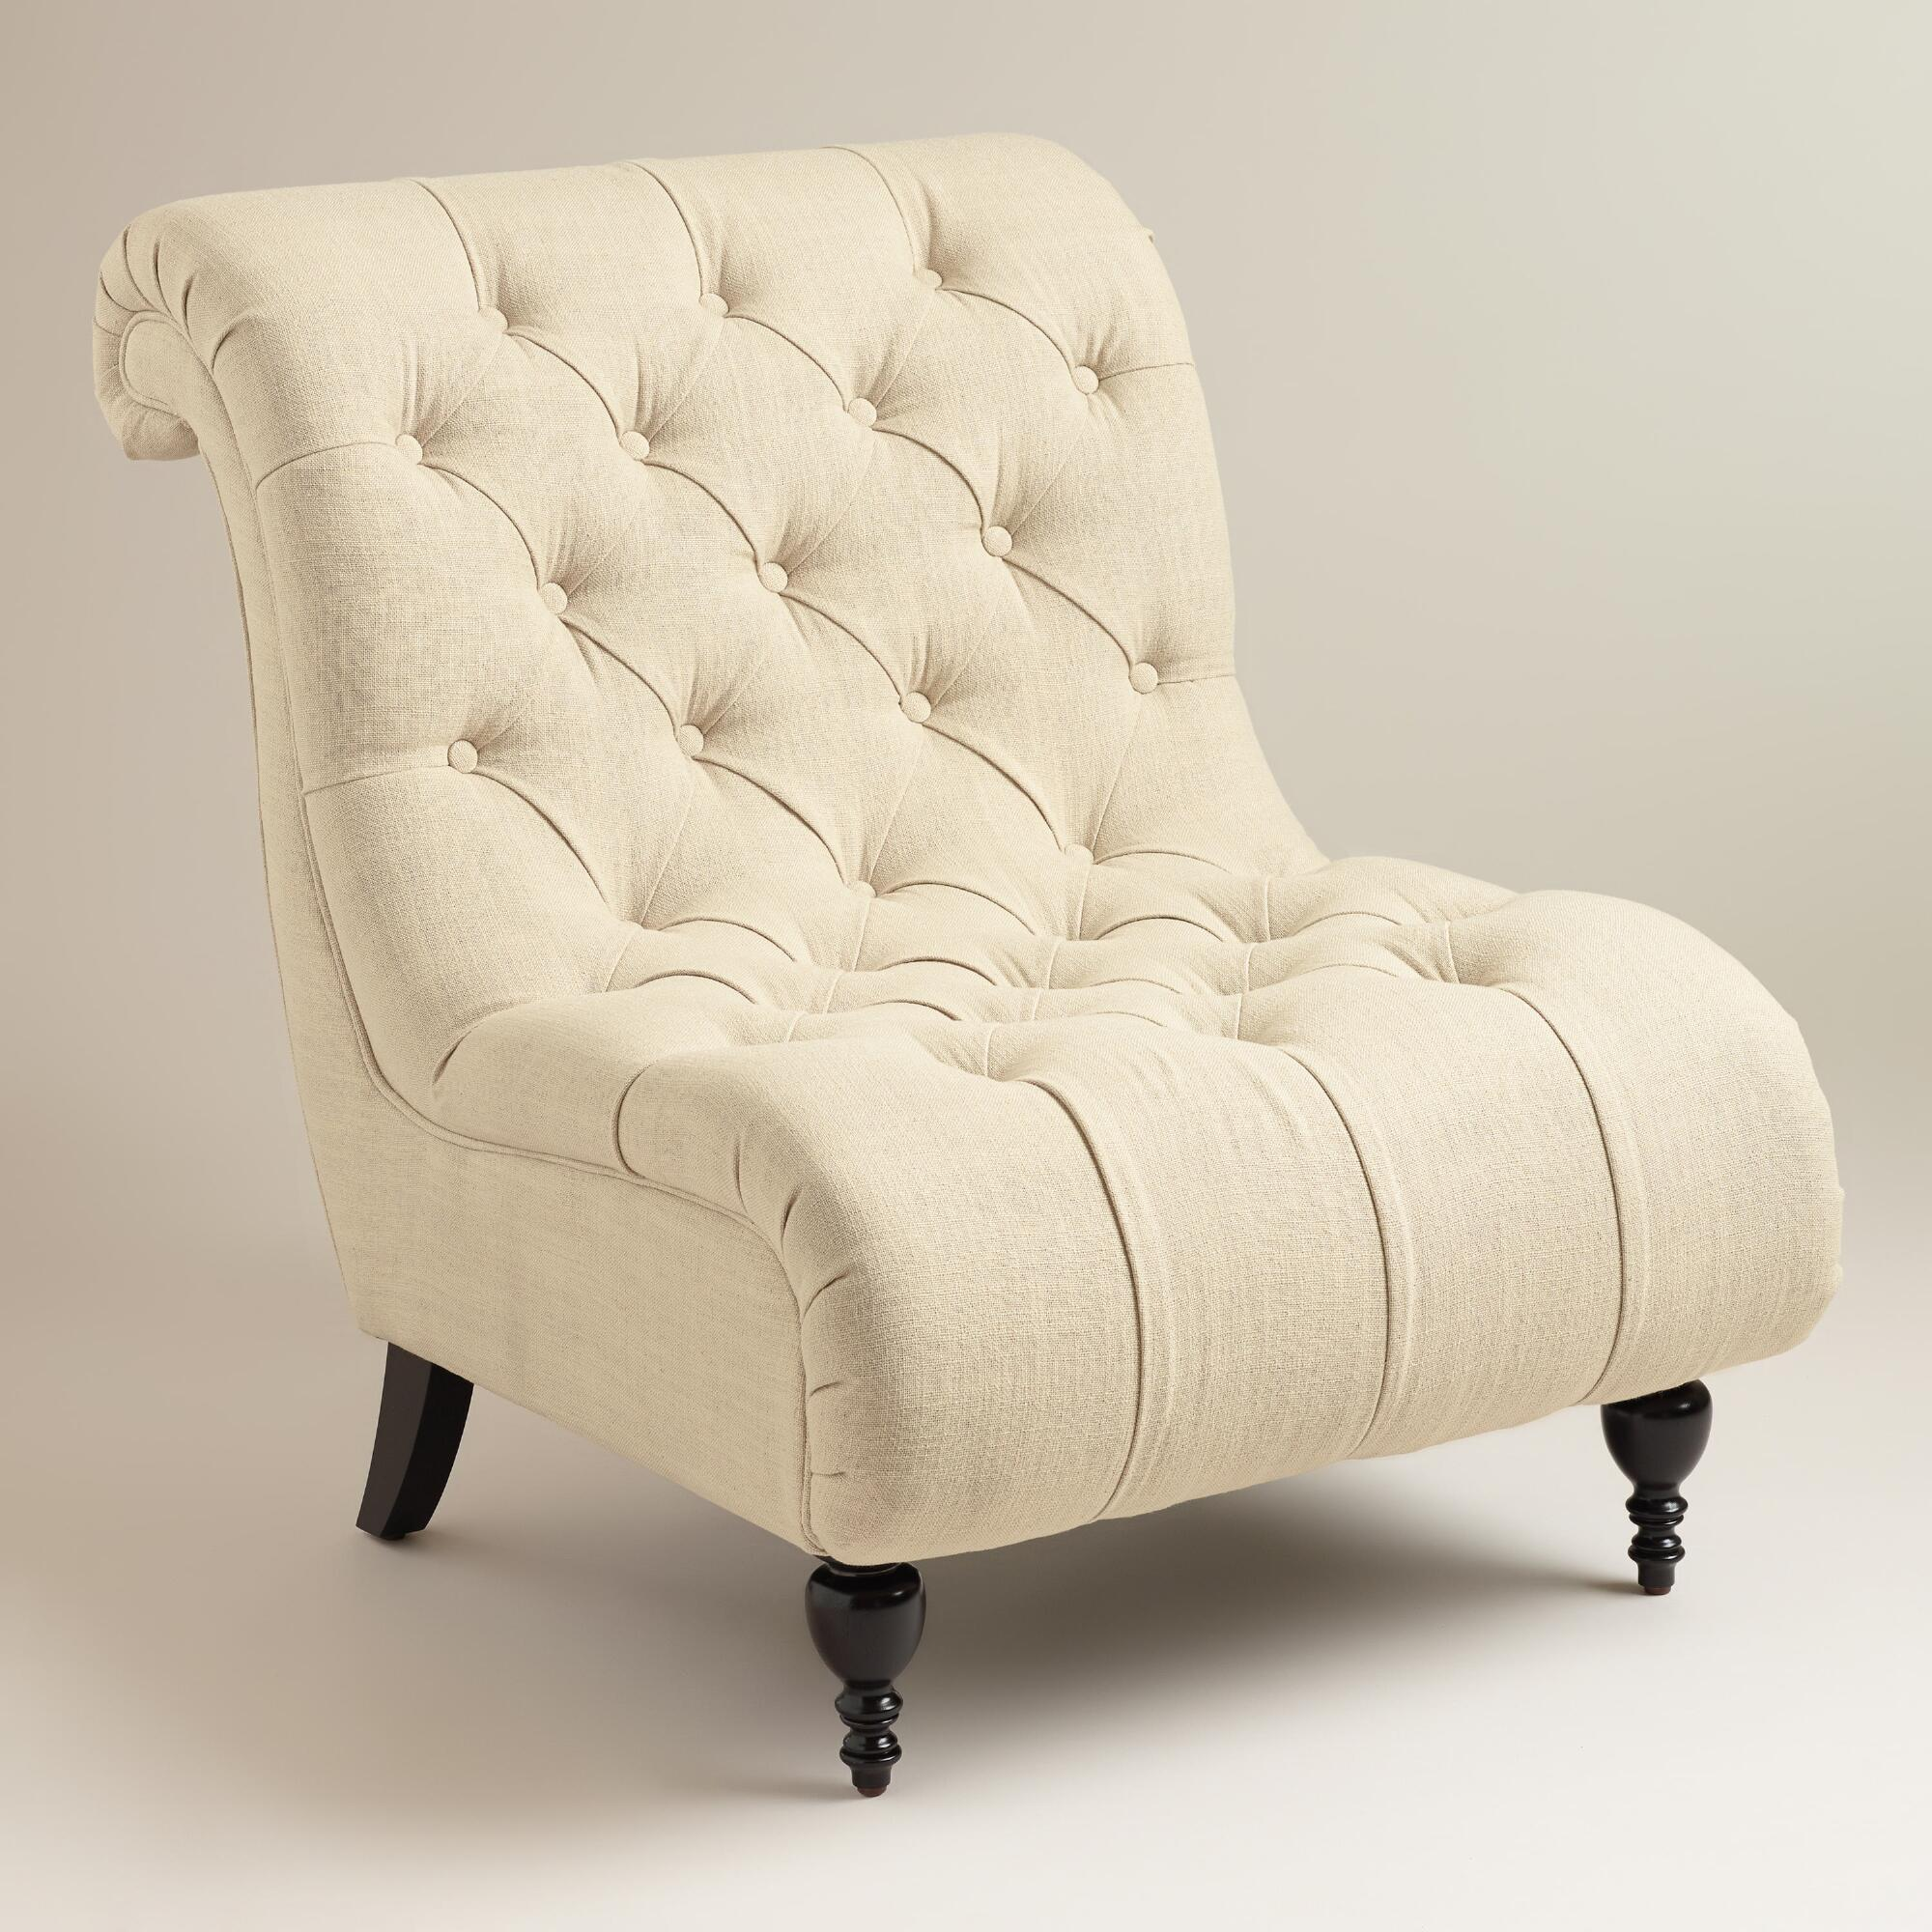 Navy Armchair | Oversized Tufted Chair | Tufted Chair